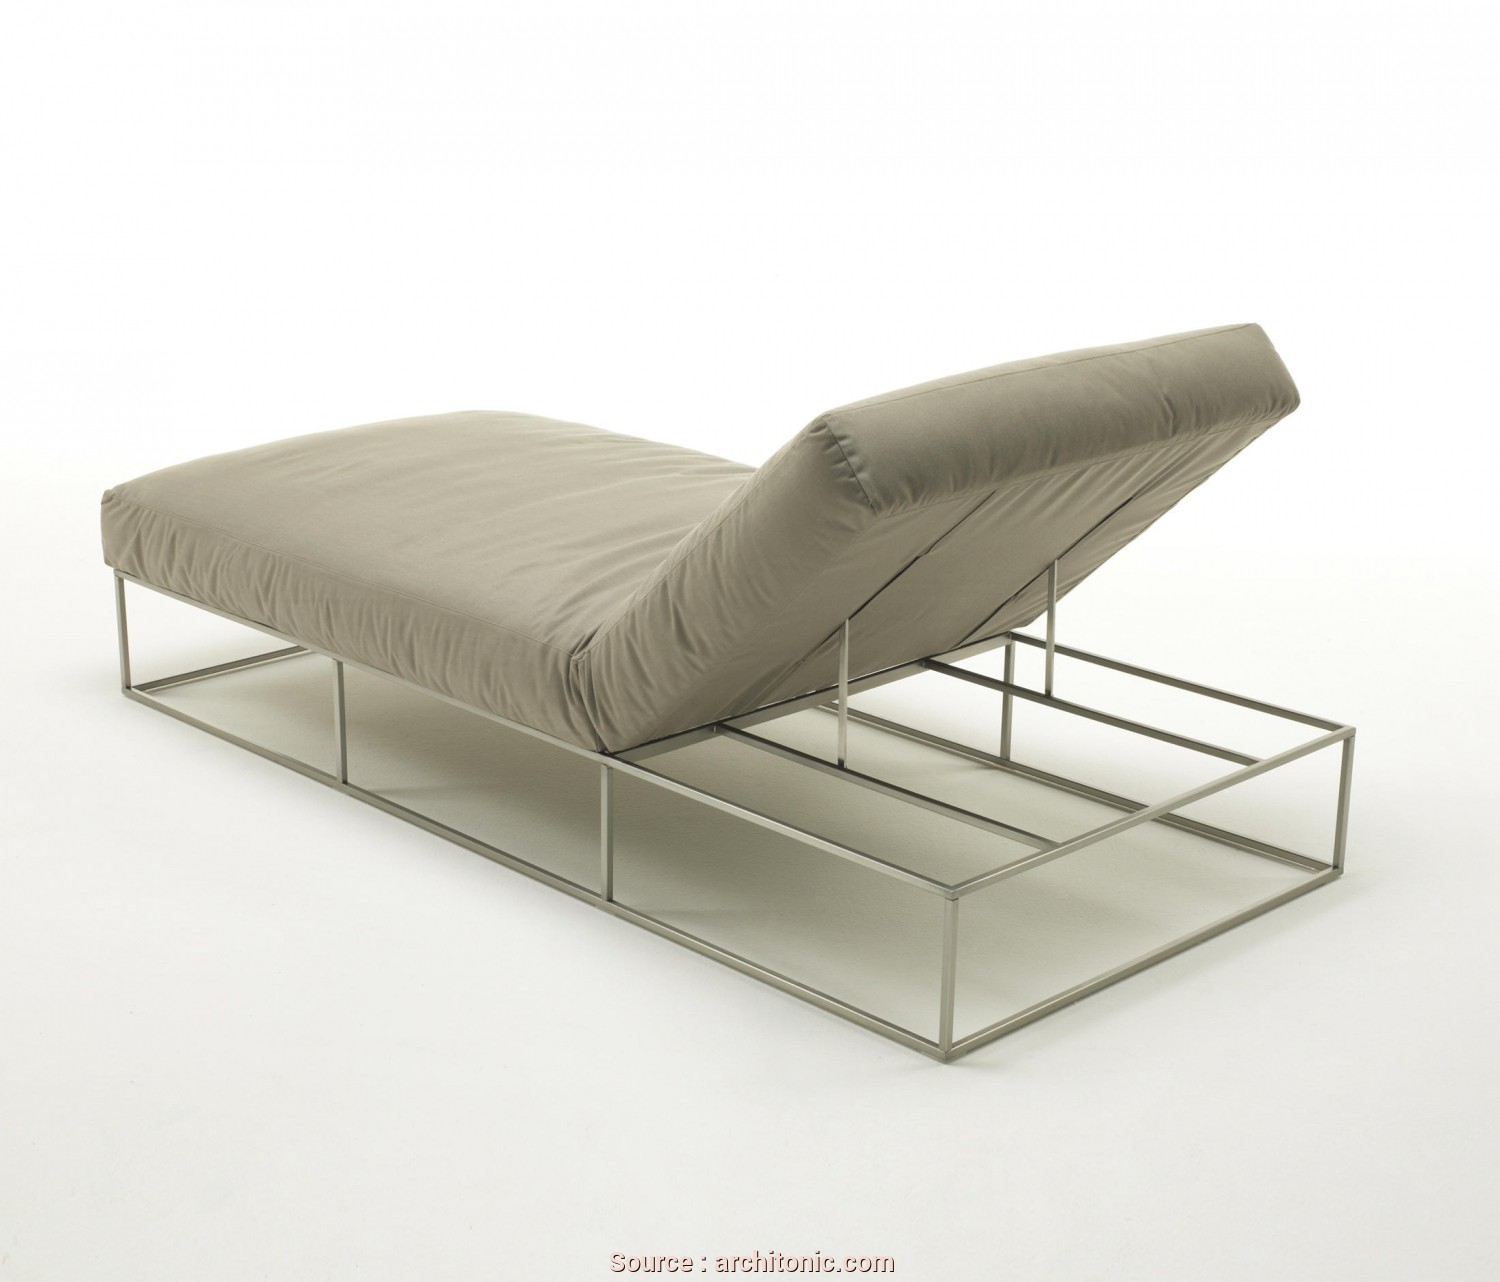 Divano Chaise Longue Mobile, Fantasia ILE CLUB DAYBED, Chaise Longues From Living Divani, Architonic